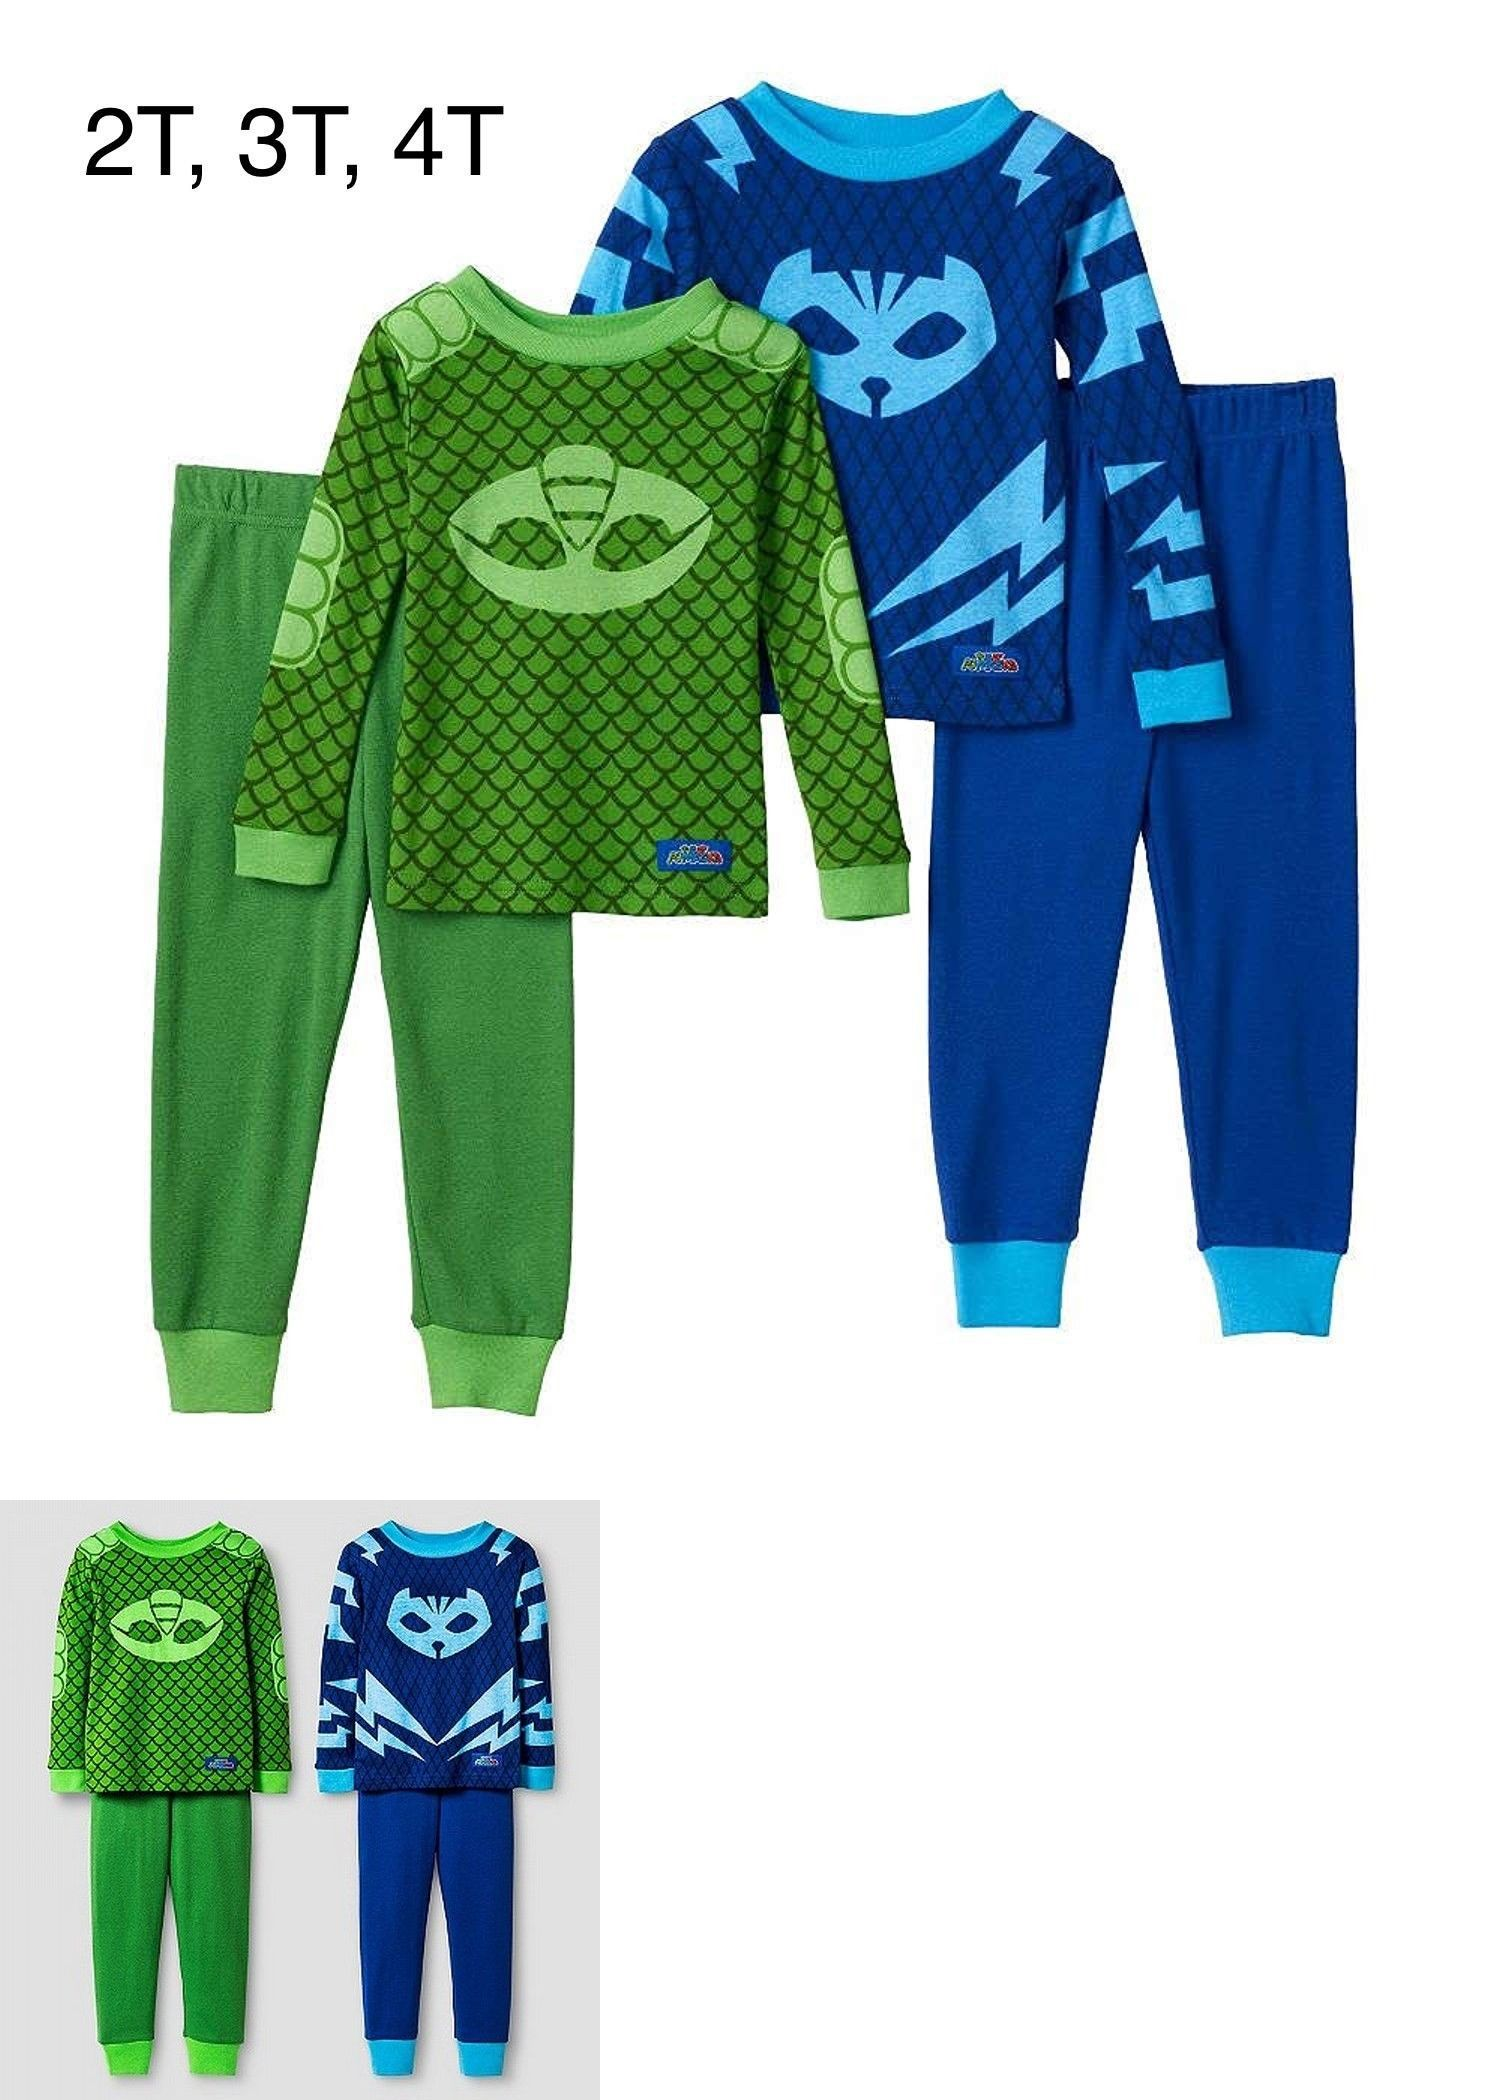 d9fd65da83 Sleepwear 147336  Pj Masks Pajama Set  Toddler Boys Gekko And Catboy 4 Pc  Set Green And Blue -  BUY IT NOW ONLY   31.99 on  eBay  sleepwear  masks   pajama ...